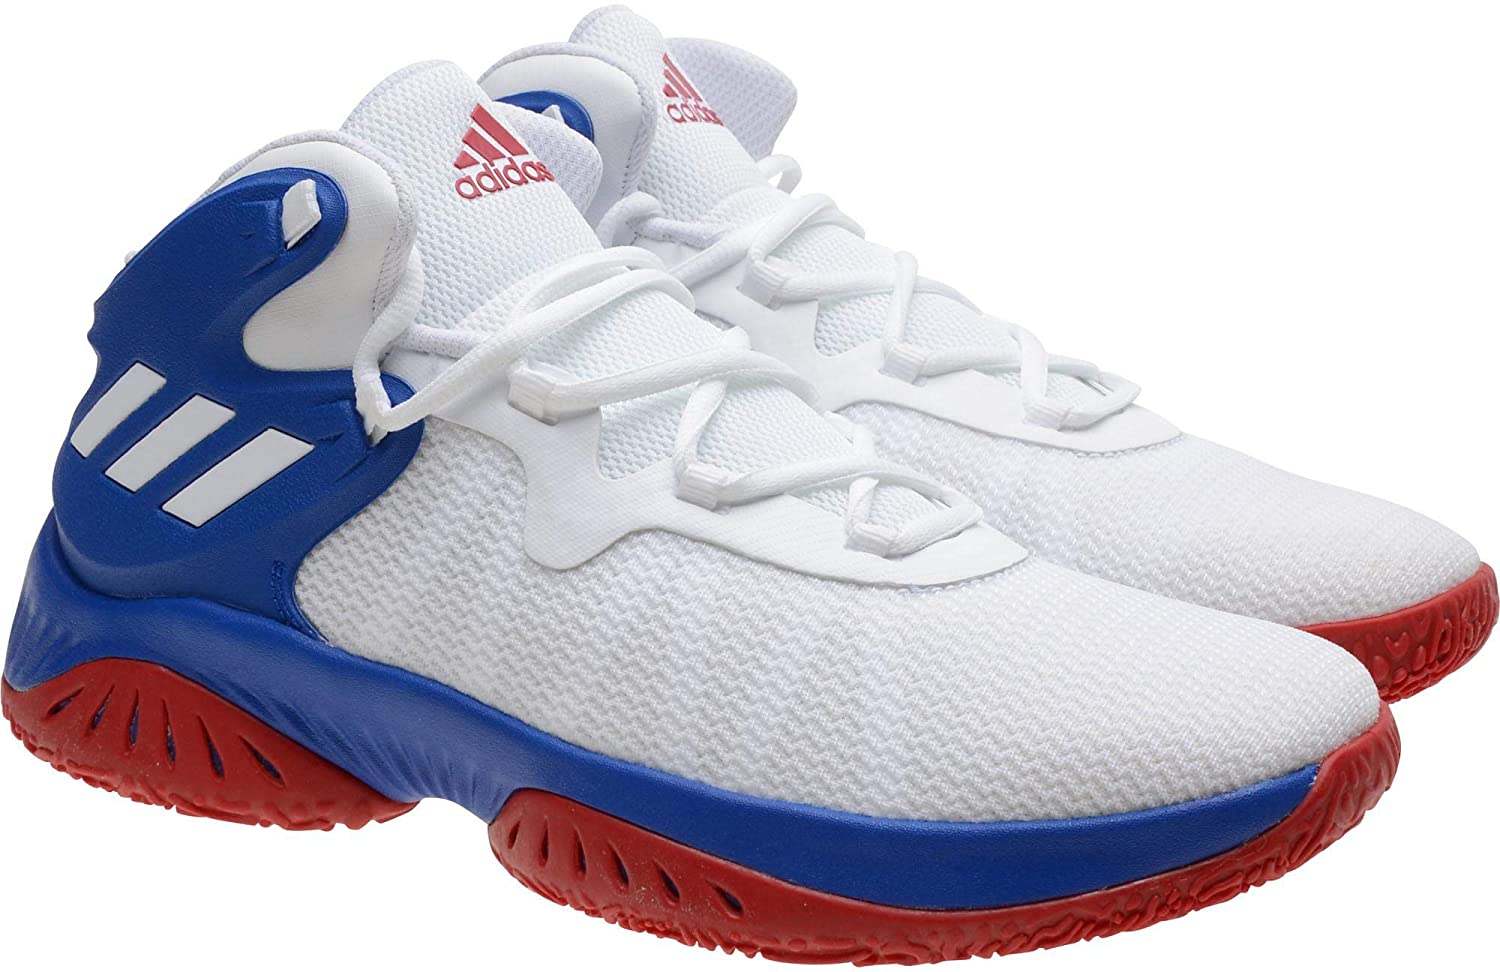 cb3f55e7acdb4 Kansas Jayhawks Team-Issued White Explosive Bounce Shoes from the ...